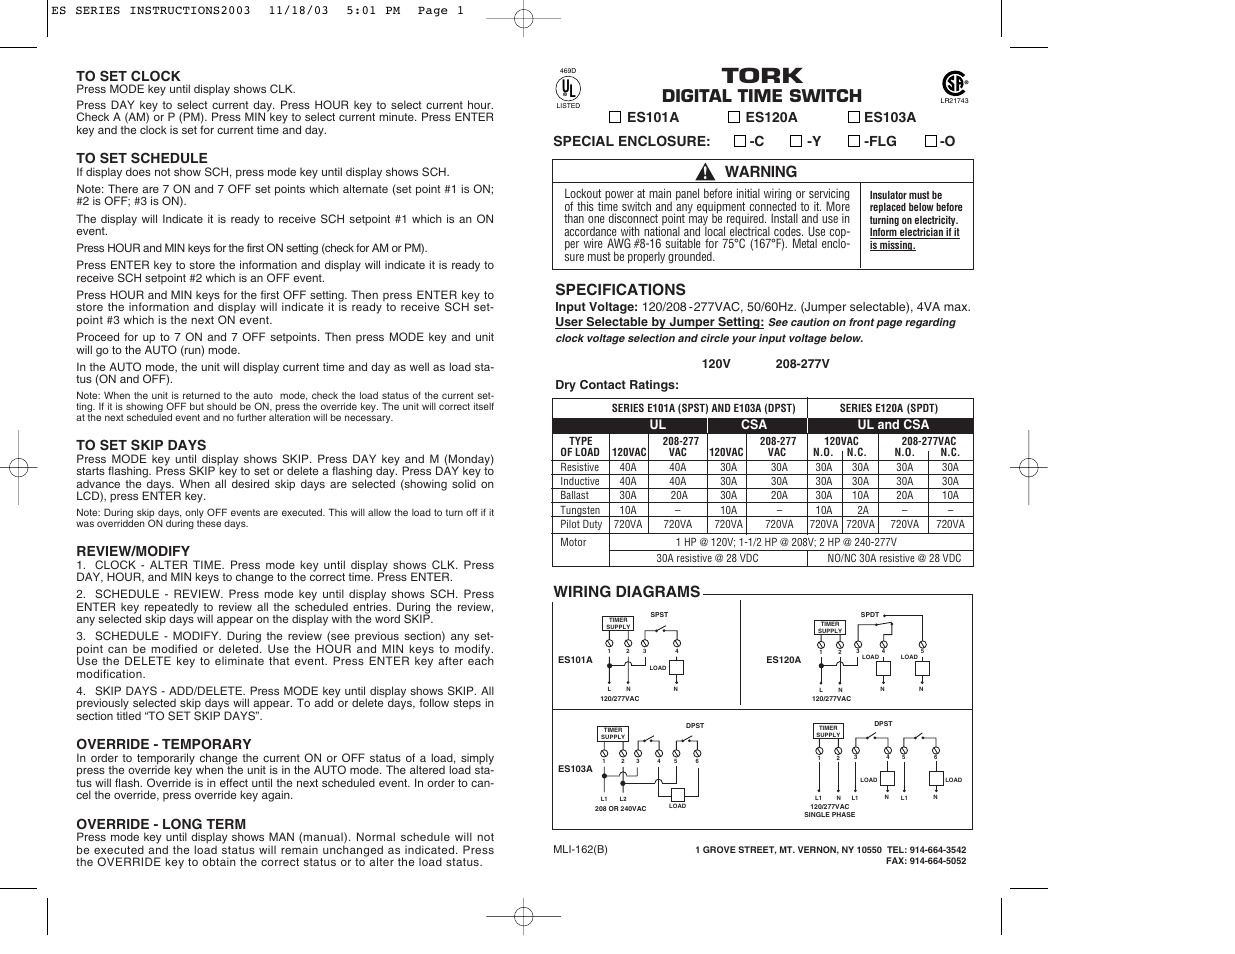 240v photocell wiring diagram uk neutrik speakon connector wire for time switch library